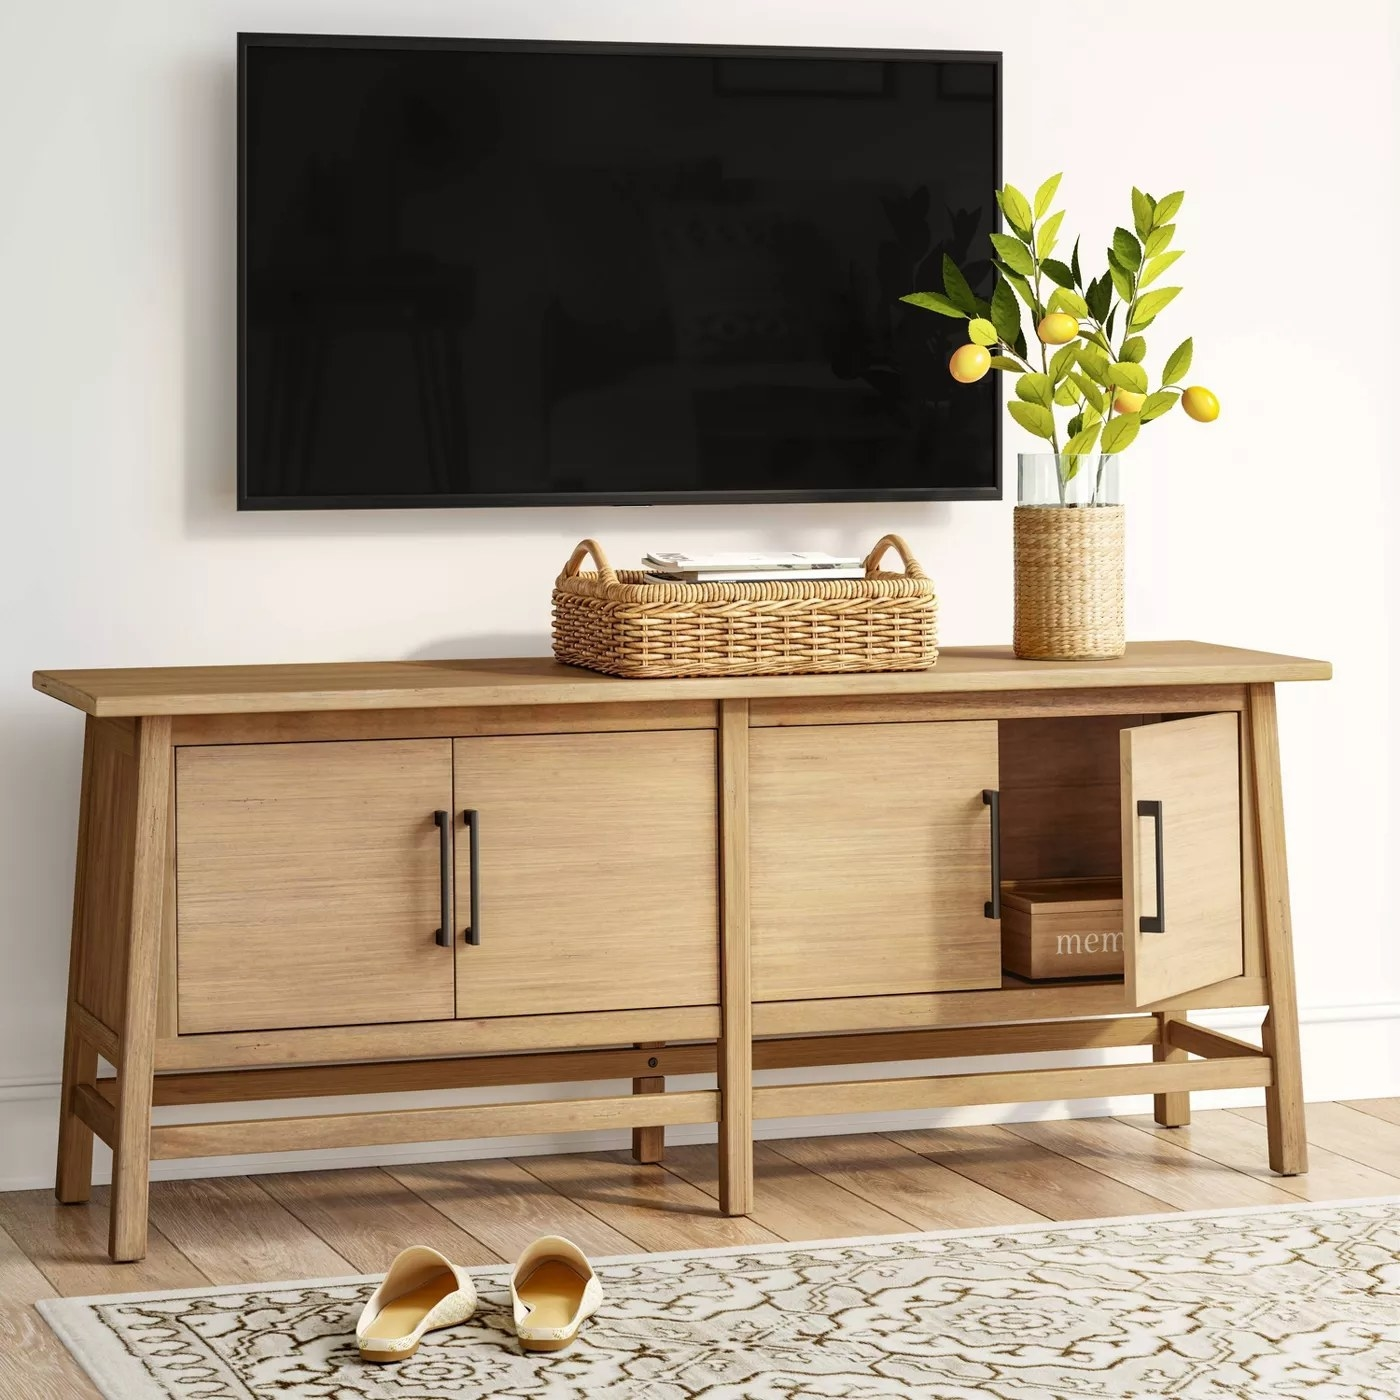 The natural TV stand with two sets of cabinets and black handles